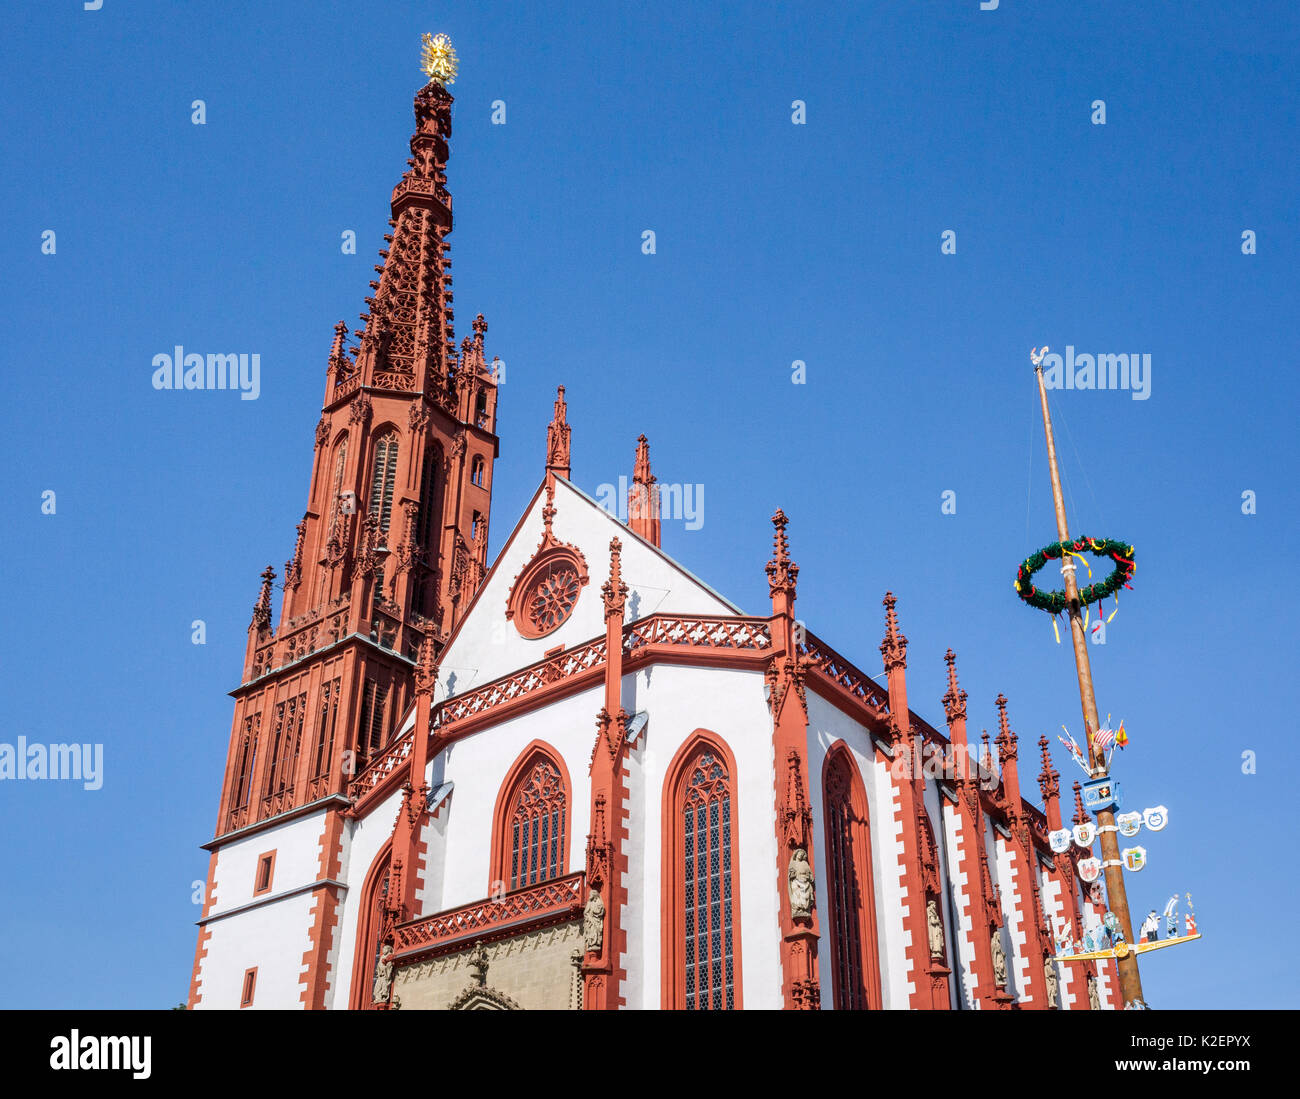 Germany, Bavaria, Franconia, Maibaum (Maypole) at the 14th century Marienkapelle (St. Mary's) Gothic church on Würzburg's market square - Stock Image